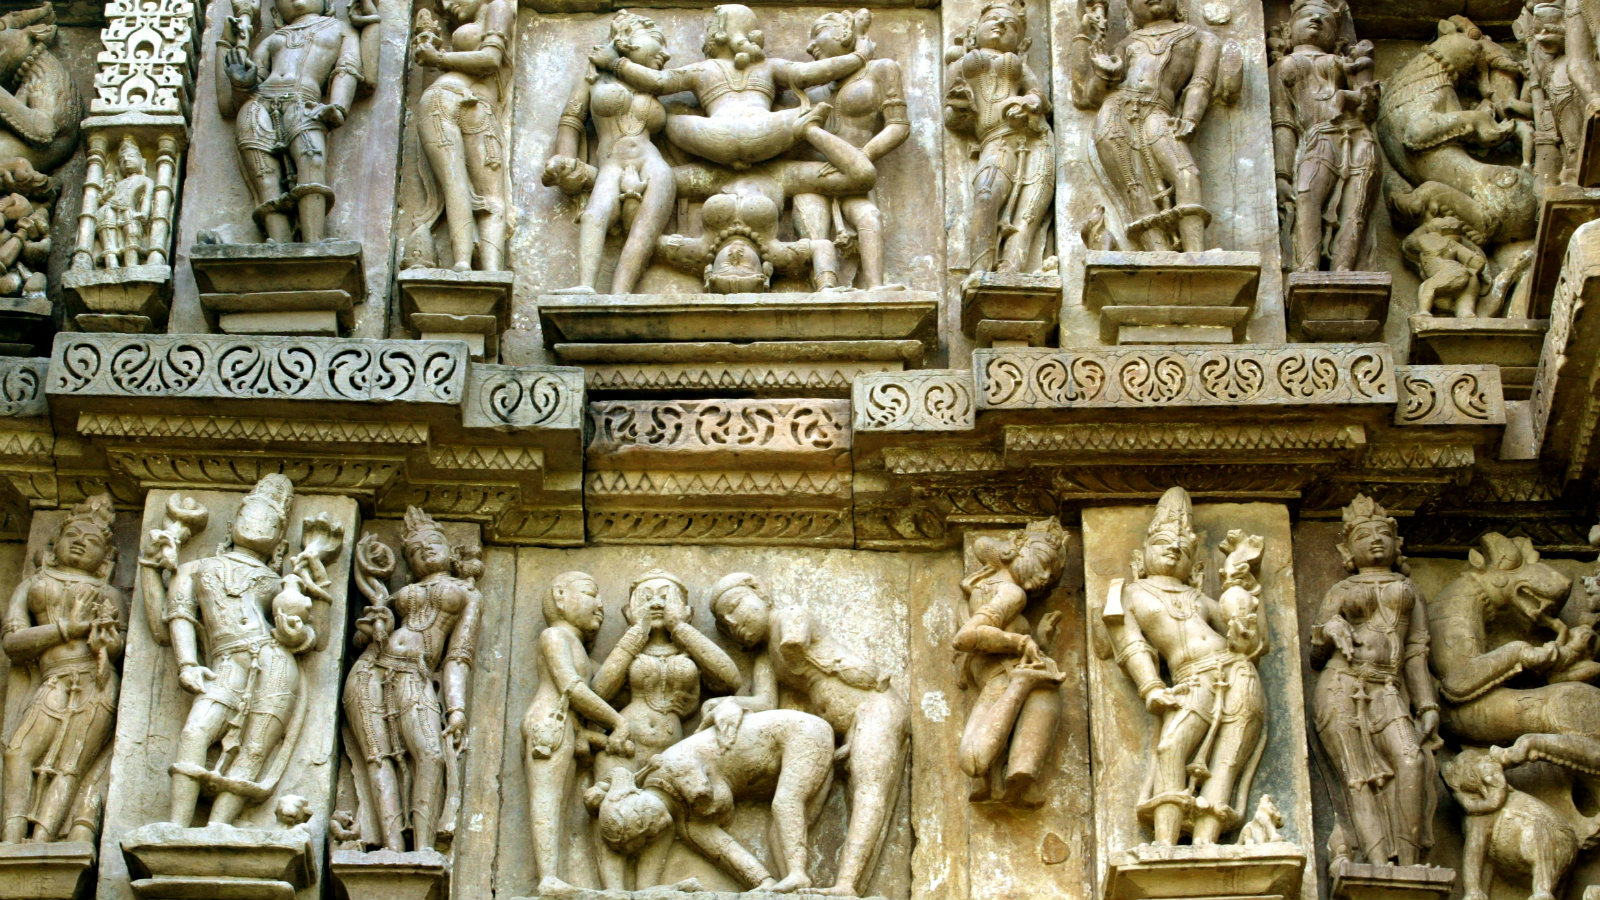 Erotic Hindu sculptures on the outer walls of a temple in the Indian town of Khajuraho in the central Indian state of Madhya Pradesh November 18, 2003. Temples in Khajuraho are famous for displaying erotic carvings and sculptures that date back to hundreds of years in a country that gave birth to the Kama Sutra.